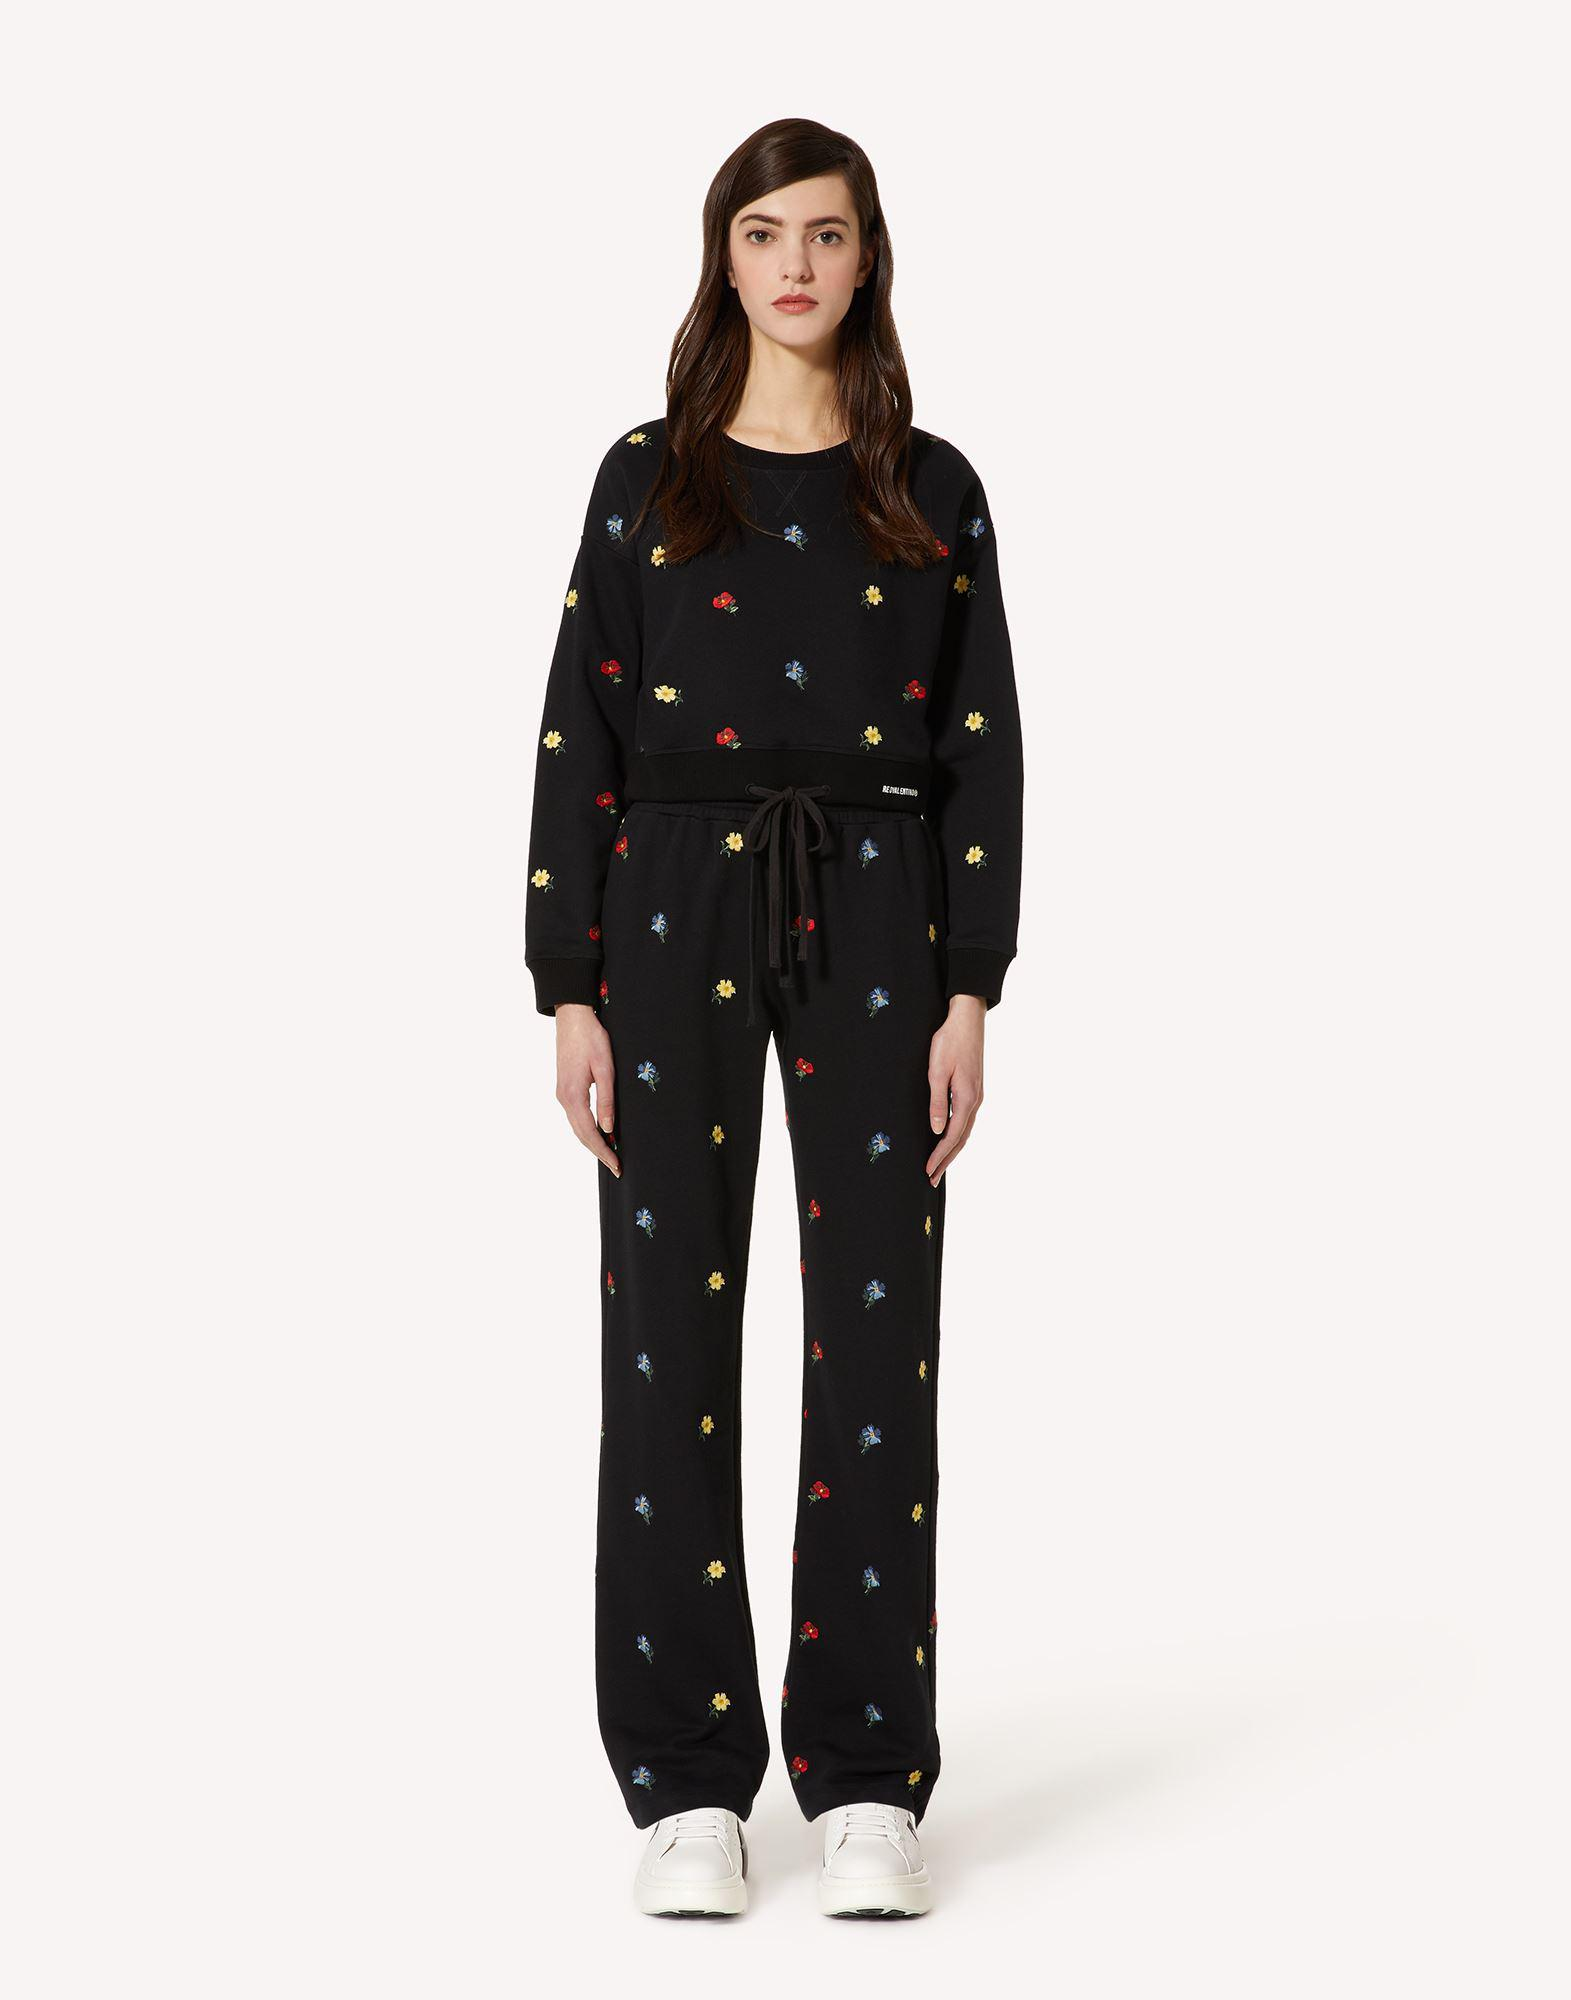 SWEATPANTS WITH DELICATE FLOWERS EMBROIDERY